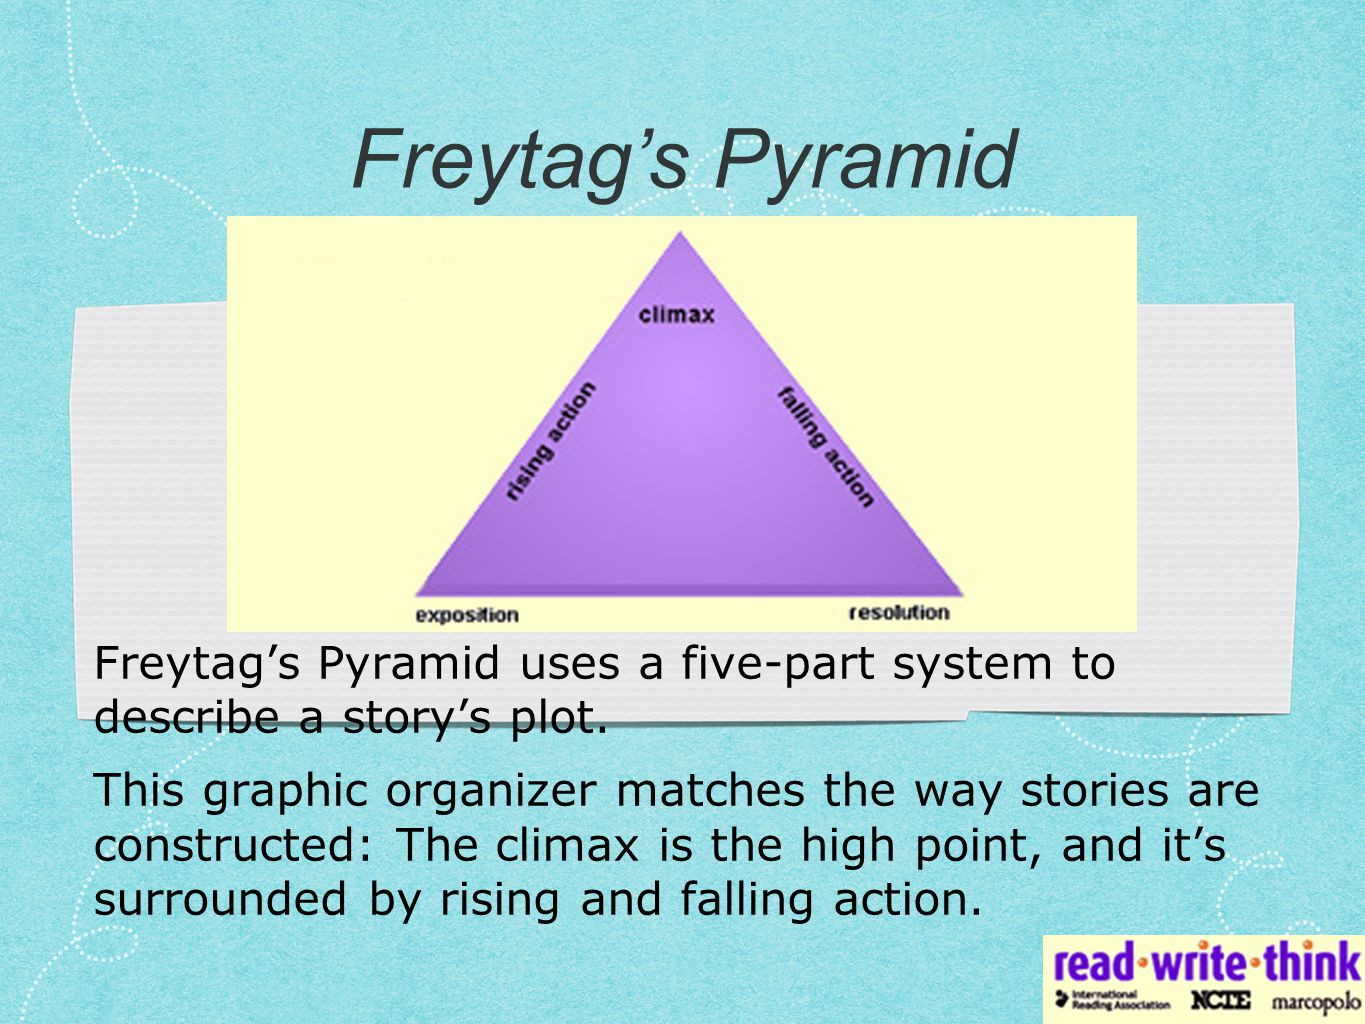 Freytag's Pyramid is often modified so that it extends slightly before and after the primary rising and falling action.